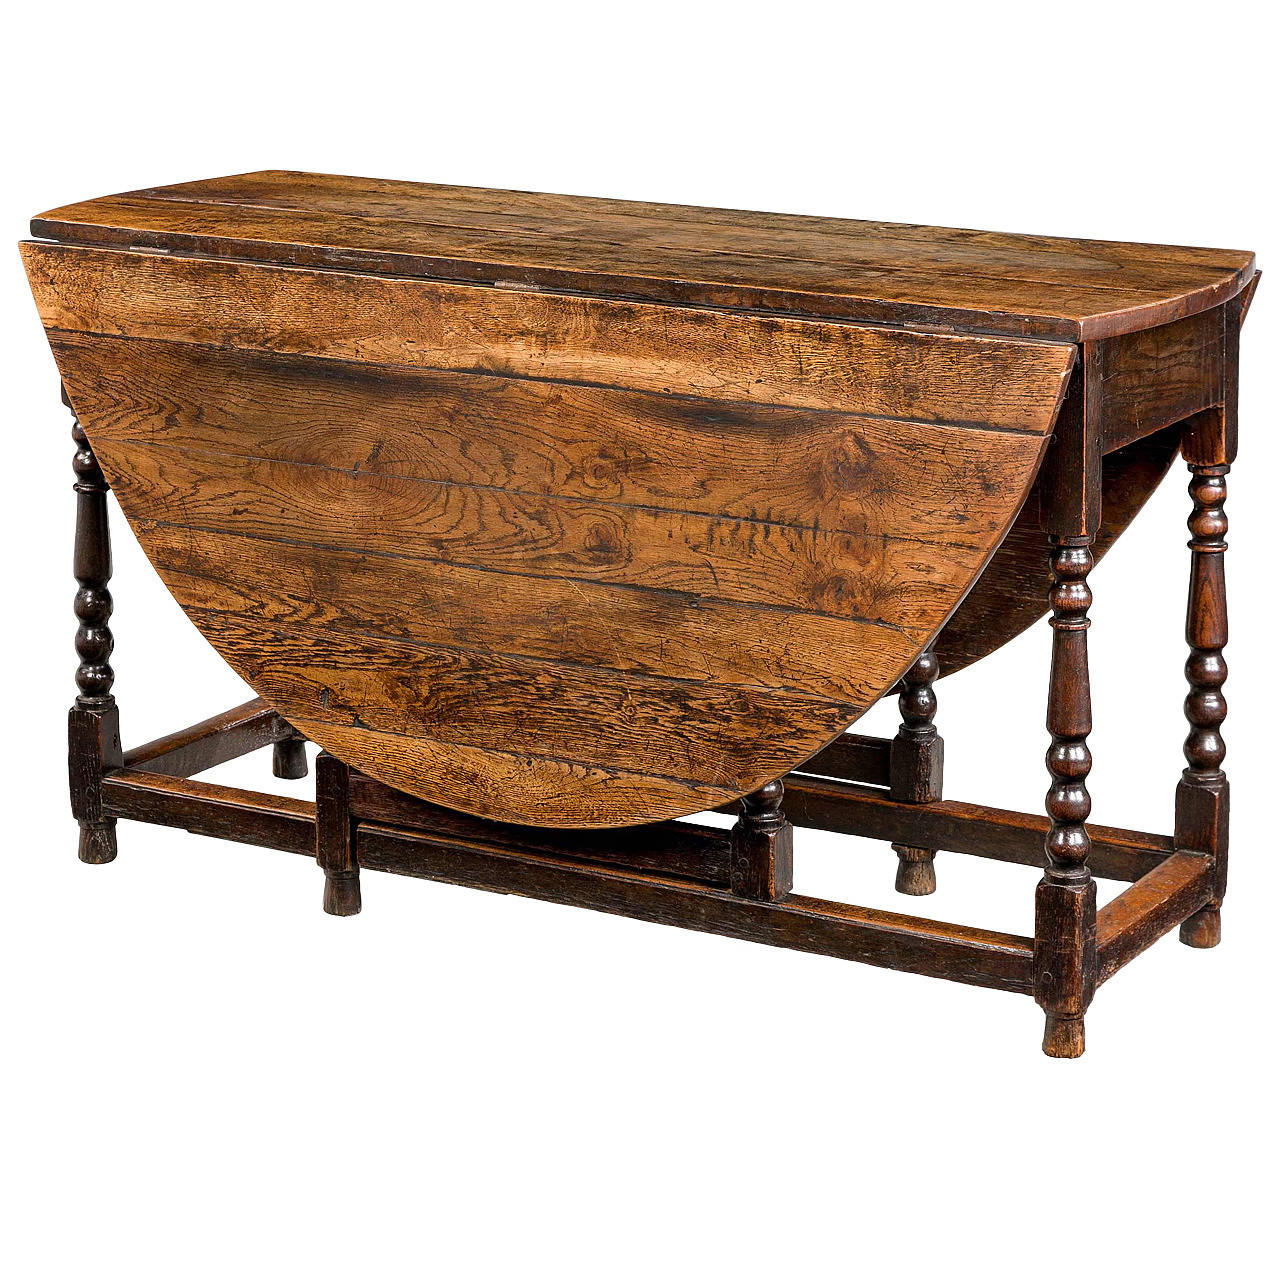 18th Century Oak Gate Leg Table